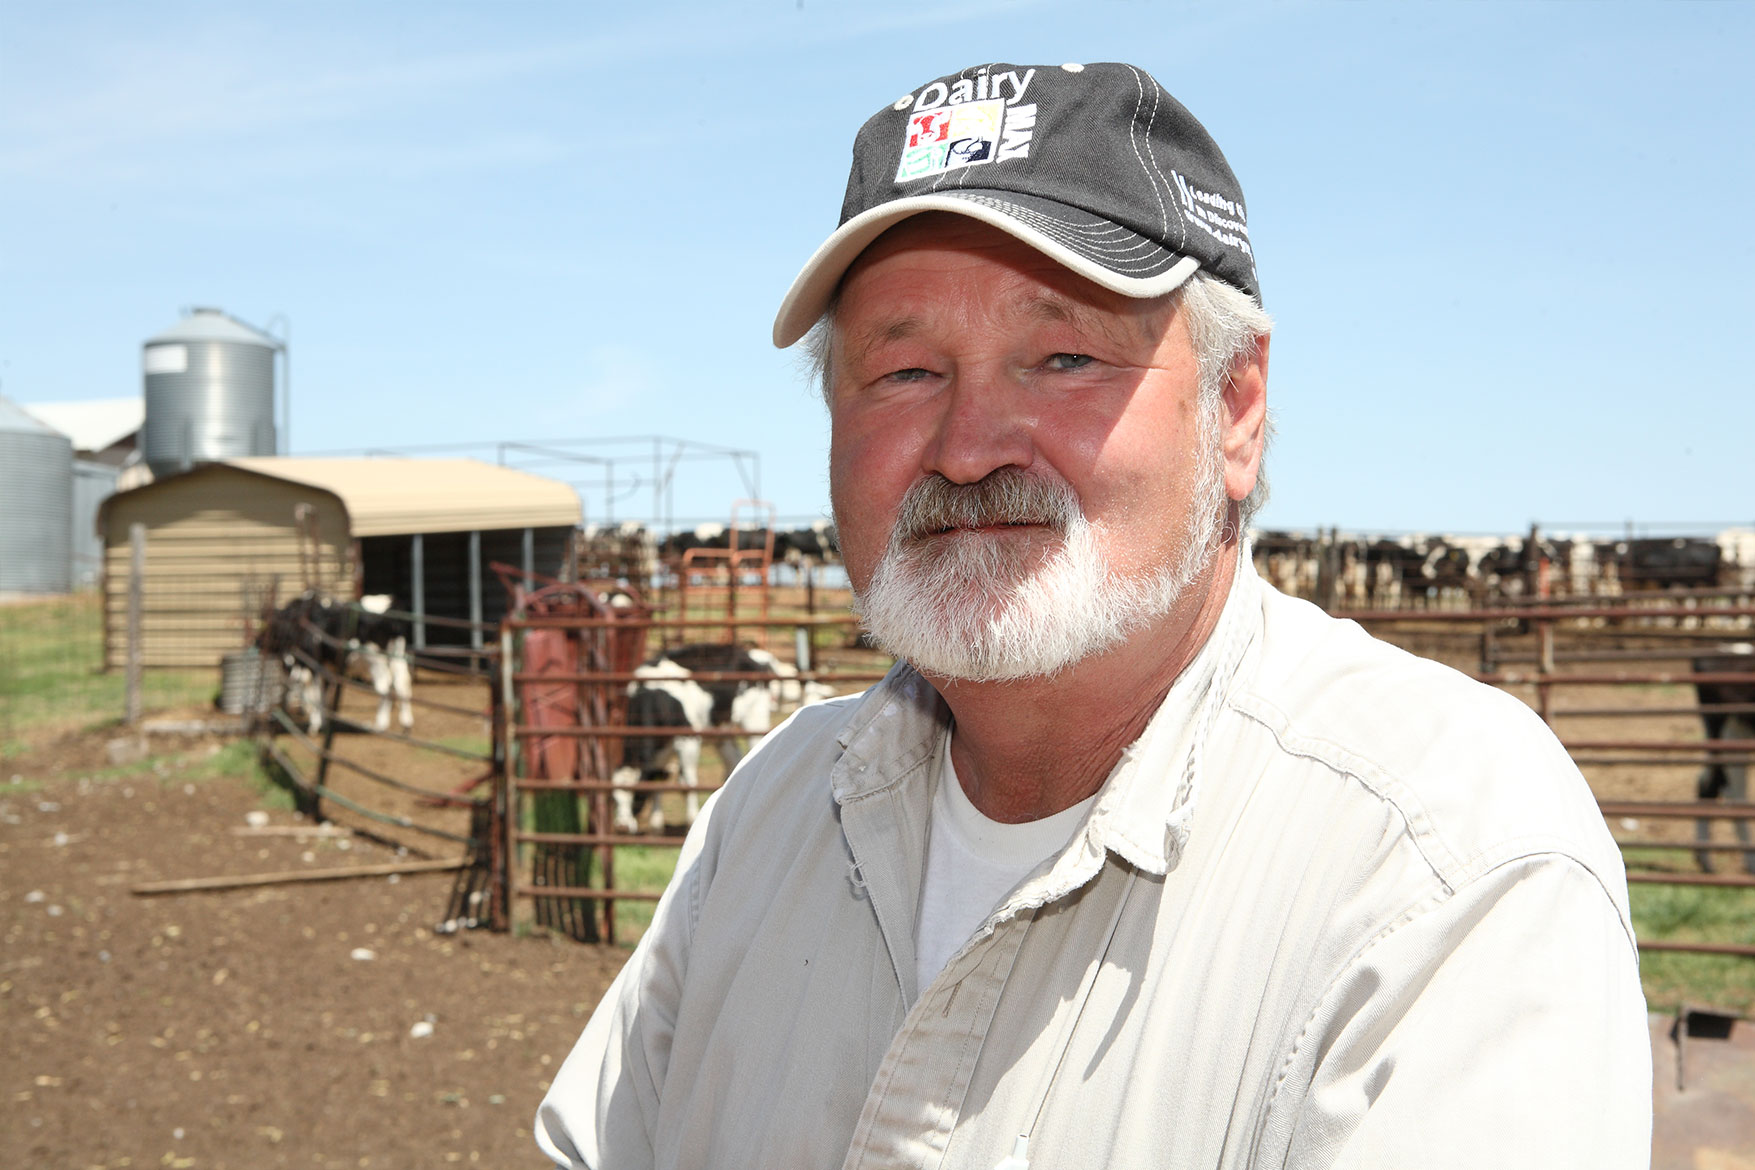 Donny Chapman poses for a photo in front of his dairy farm.